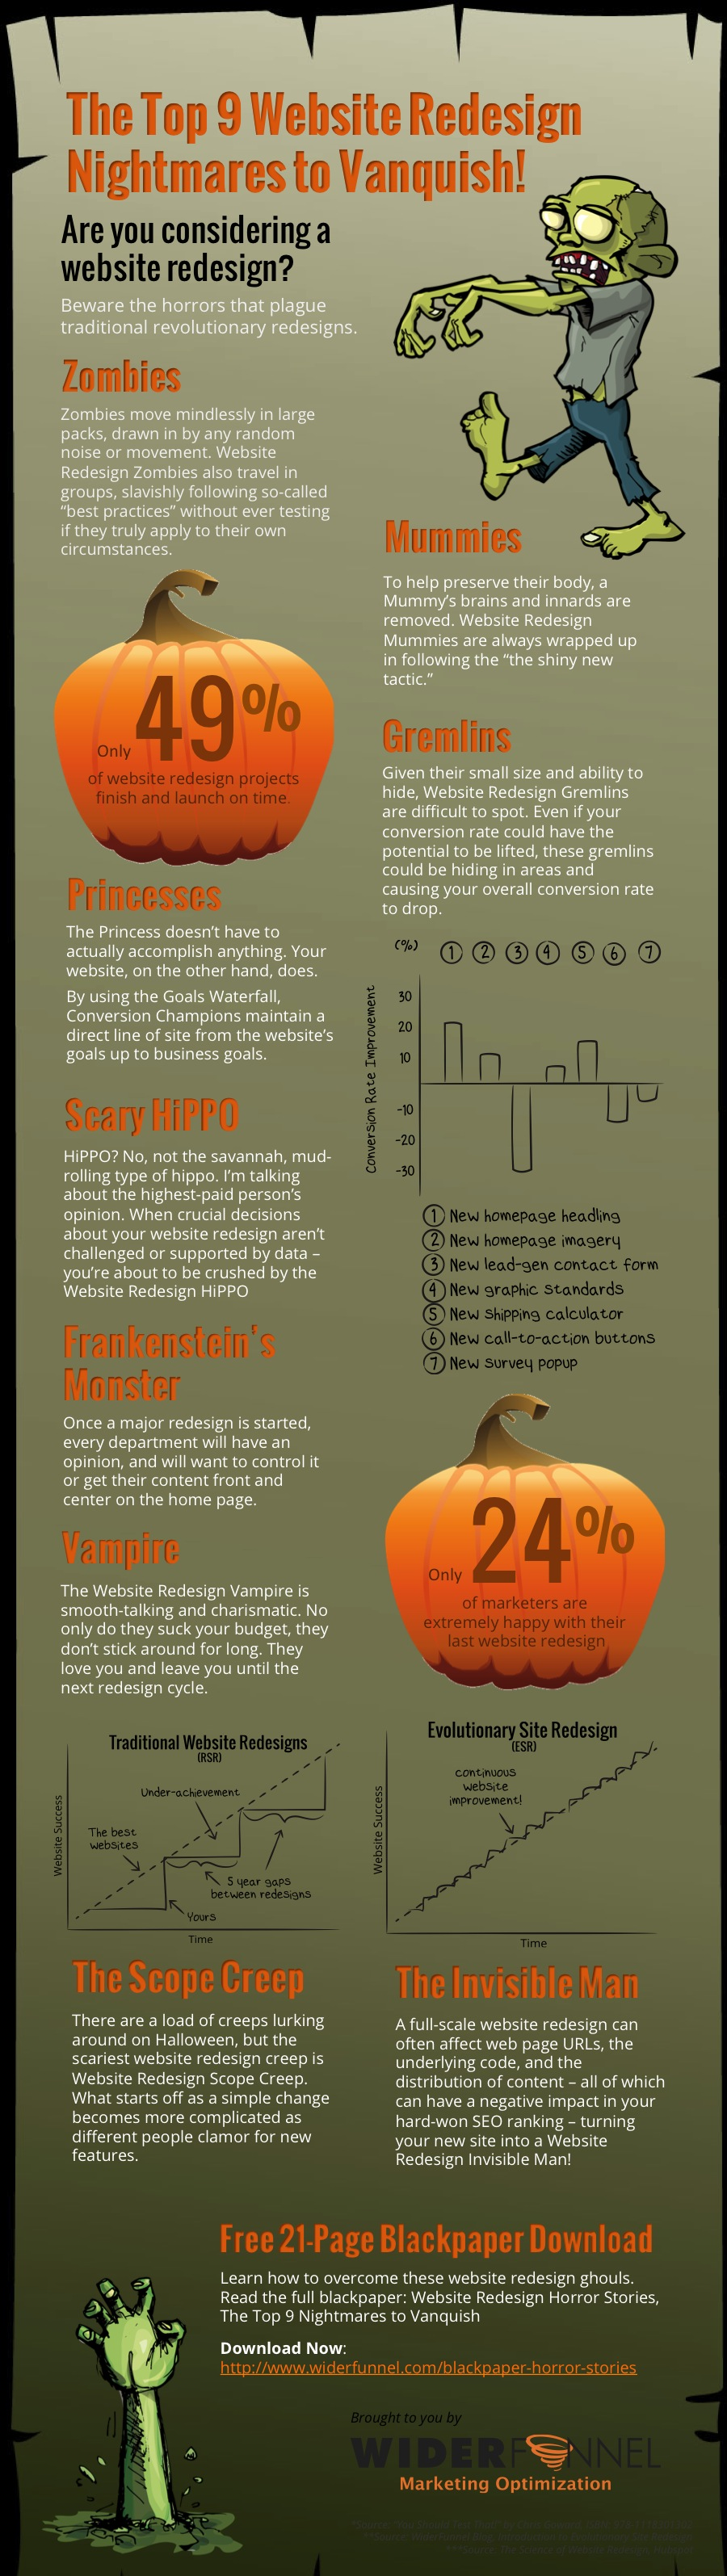 Website Redesign Nightmares infographic